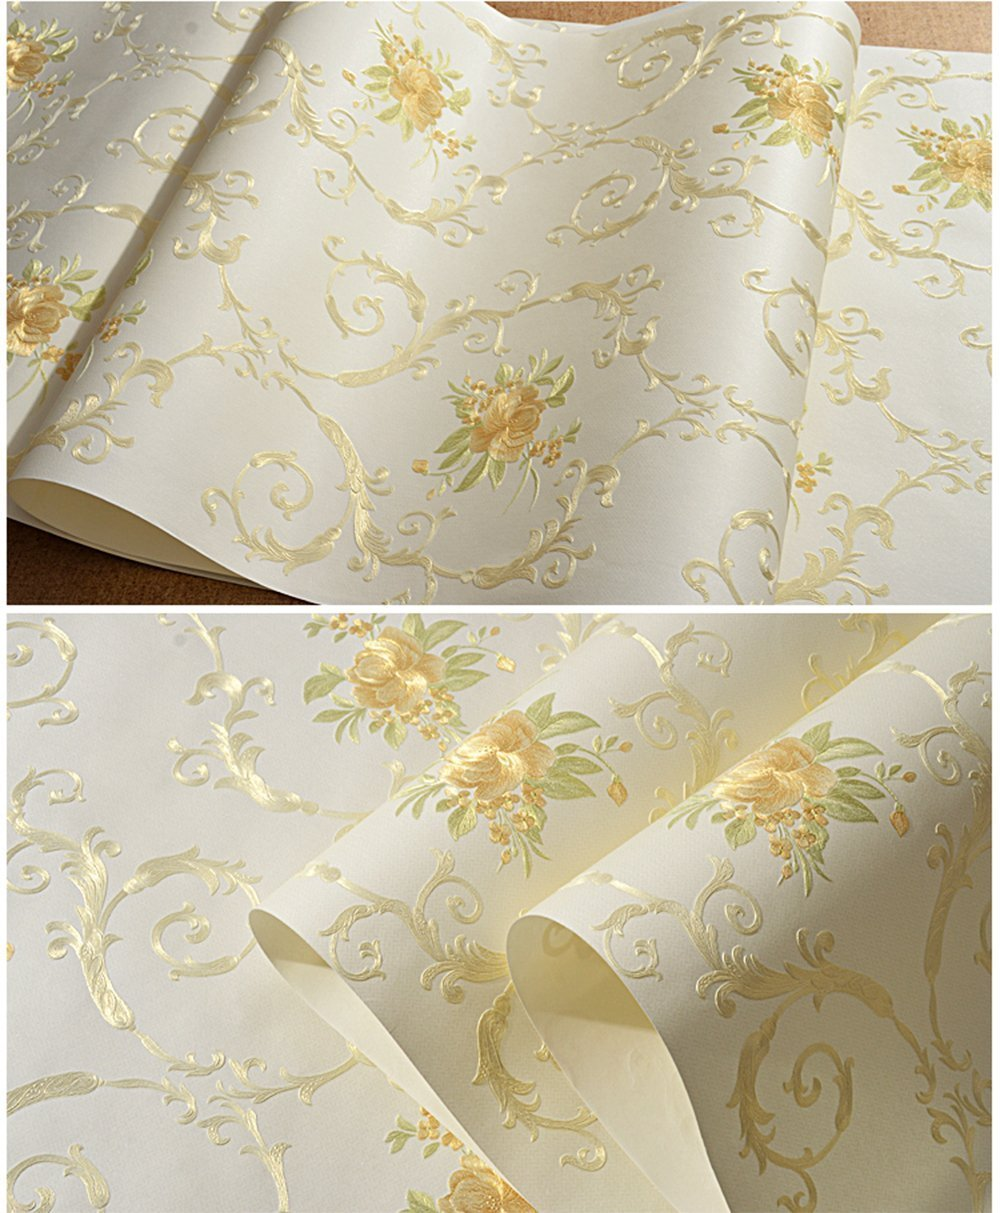 Non-Woven Temporary Self Adhesive Removable Wallpaper Luxury Embossed Floral Mural Wallpaper Stick and Peel Roll 20.83 Inches by 9.8 Feet by Glow4u (Image #3)